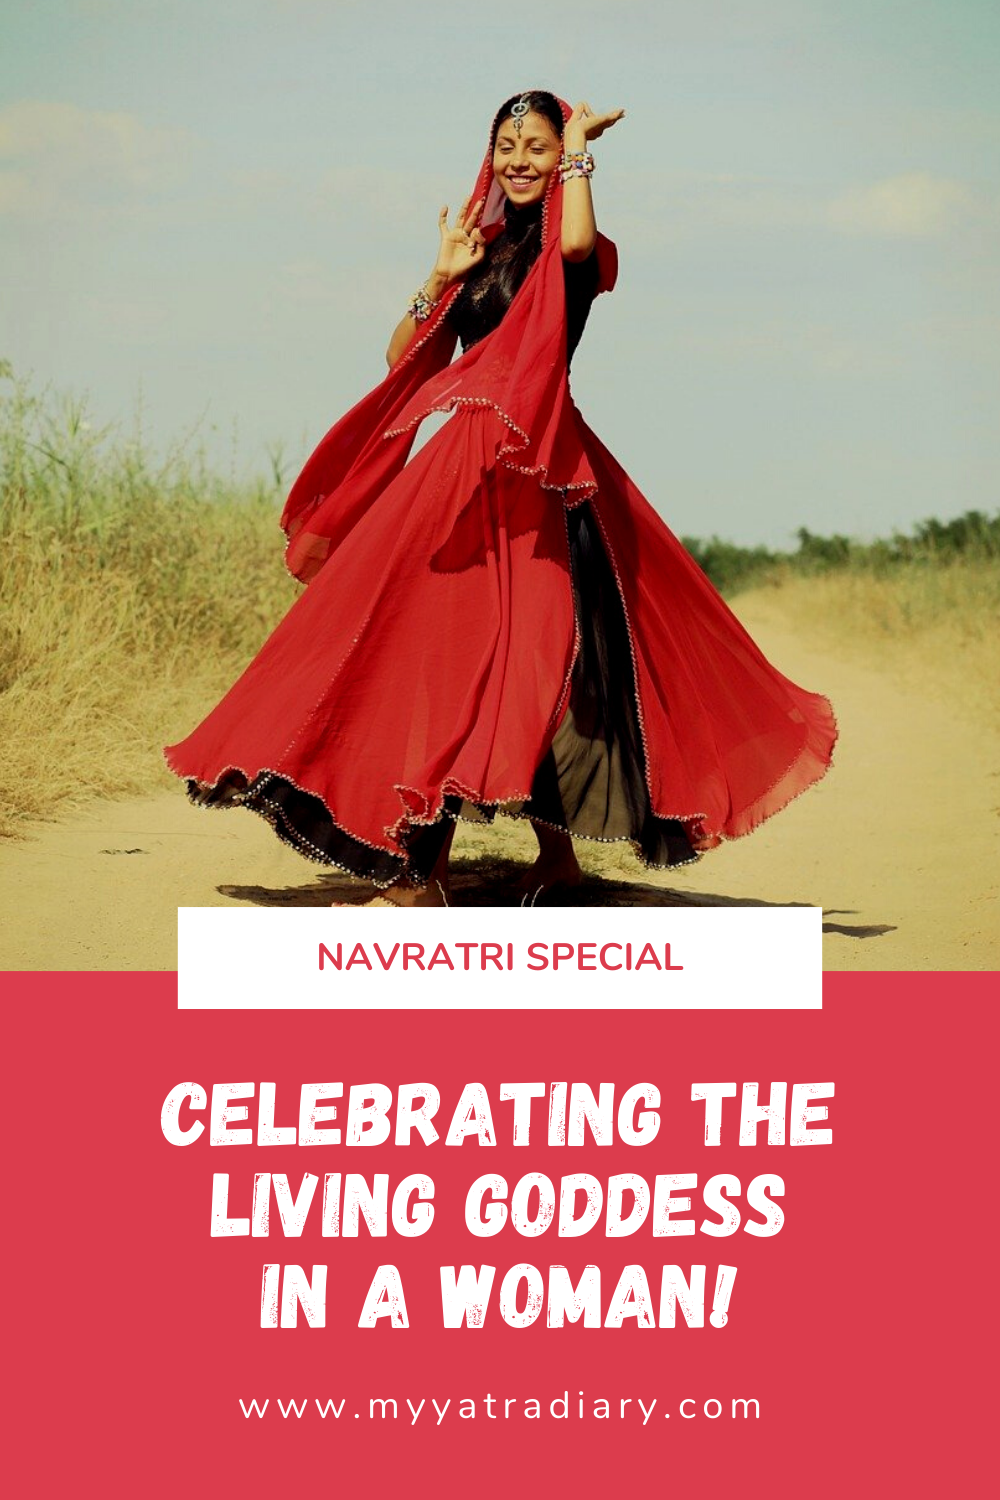 Celebrating the living goddess in a woman this Navratri festival